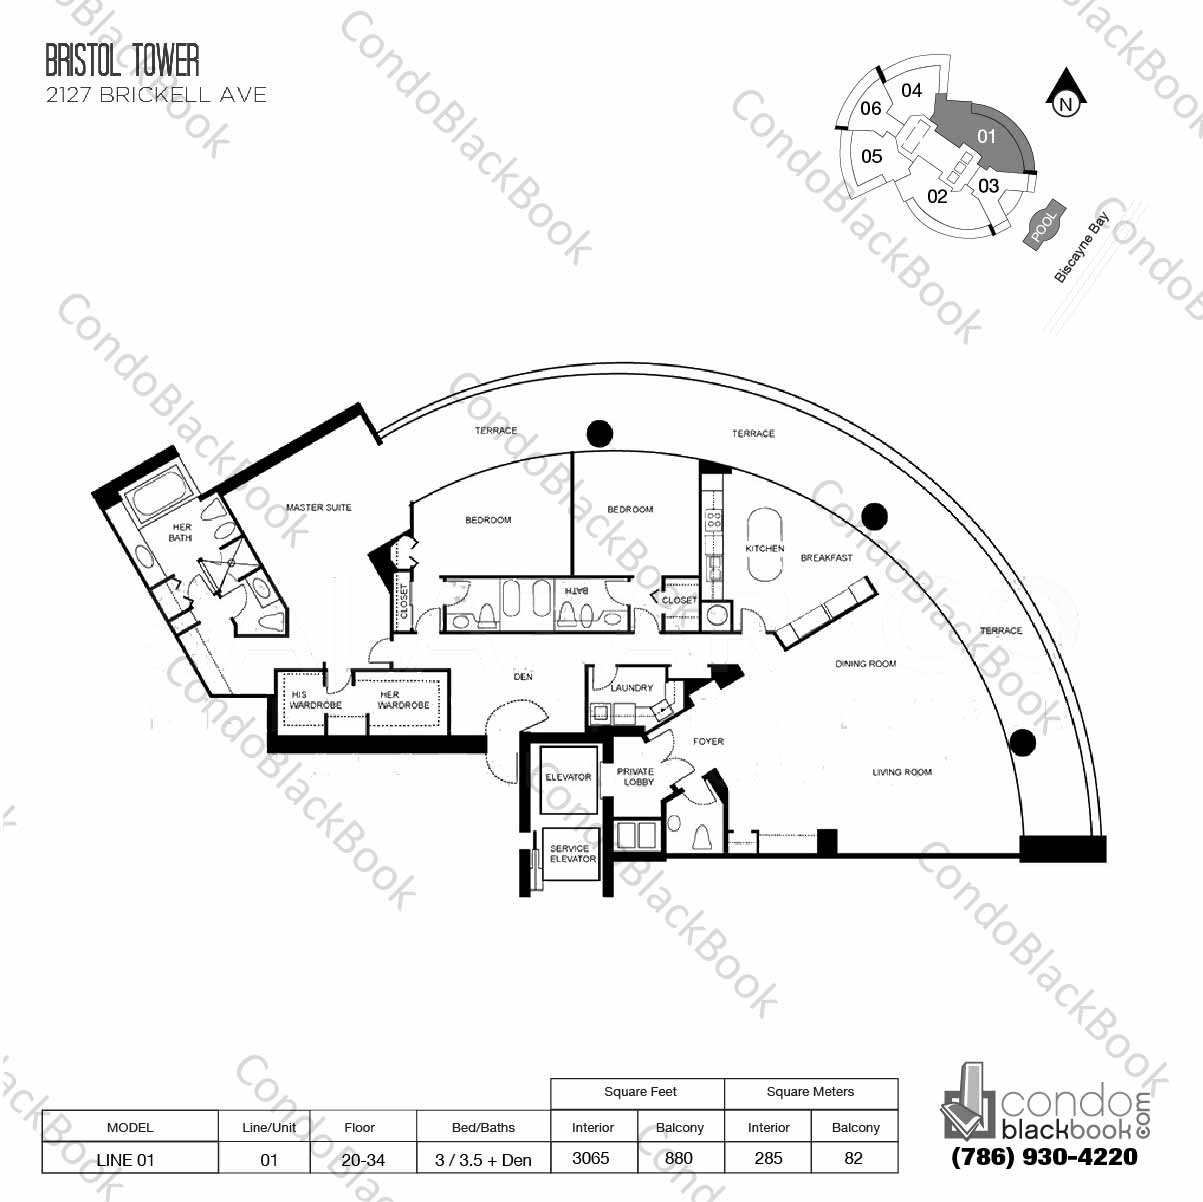 Floor plan for Bristol Tower Condominium Brickell Miami, model Line 01, line 01, 3 / 3.5 + Den bedrooms, 3065 sq ft